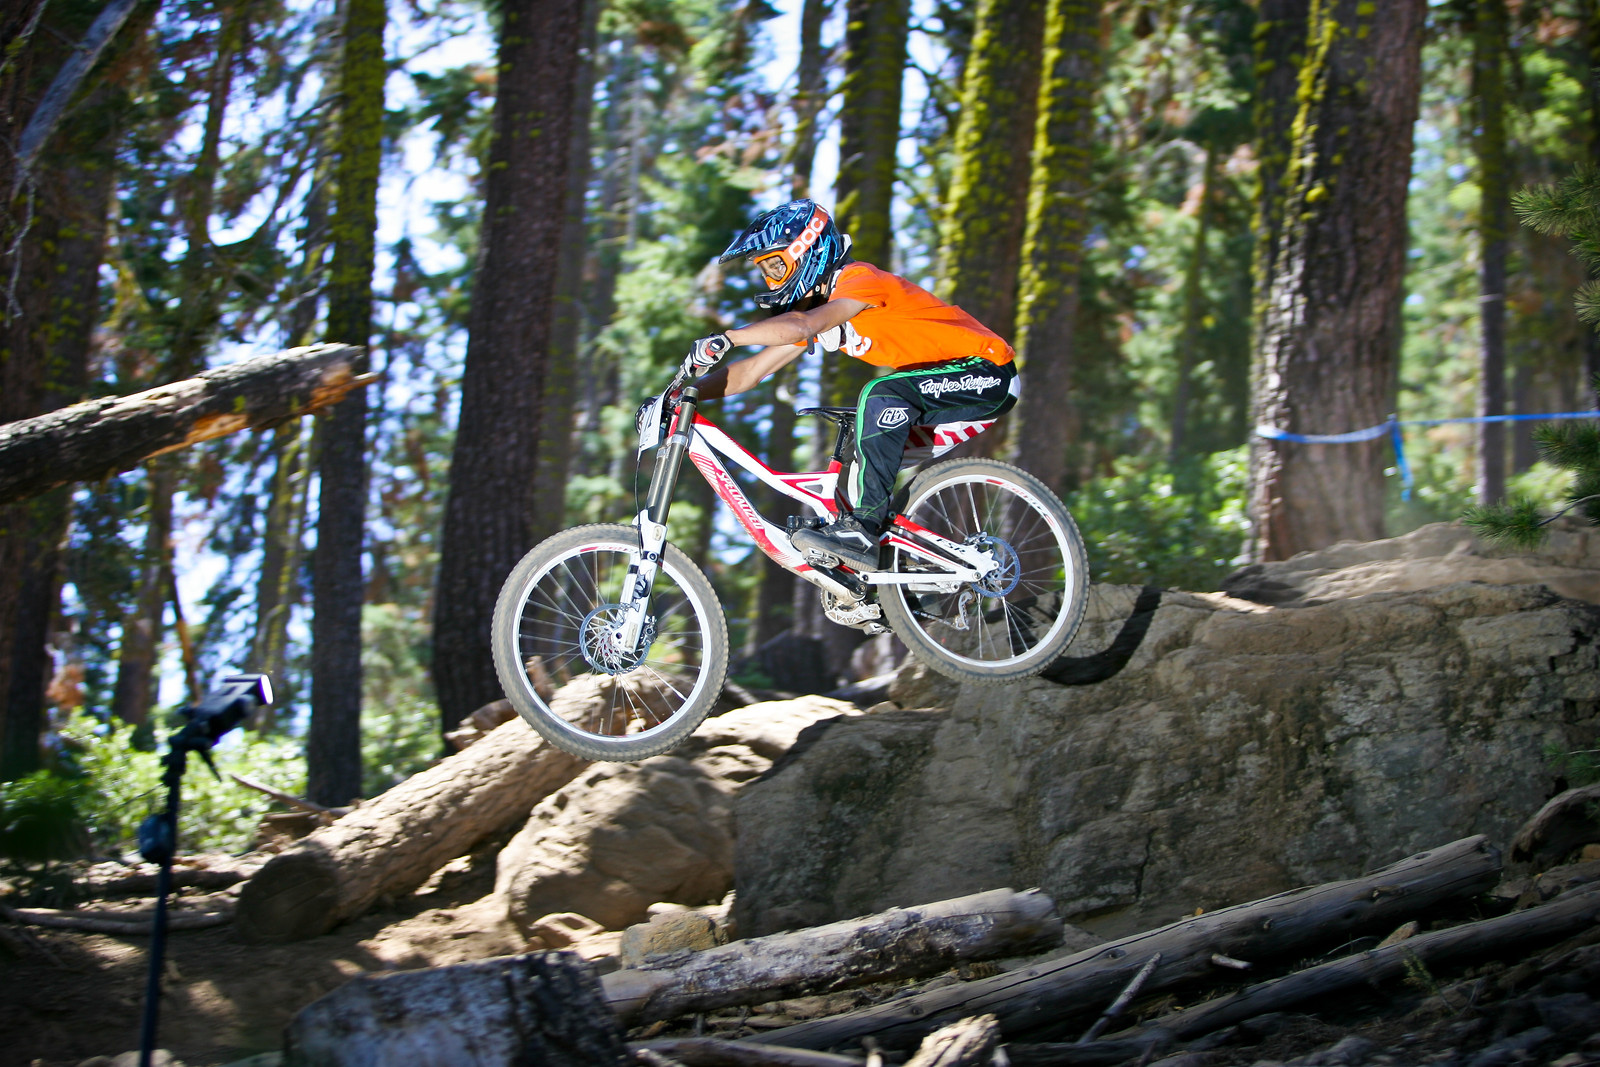 Northstar 2012 sticks and stones race - alexgnzlz20 - Mountain Biking Pictures - Vital MTB